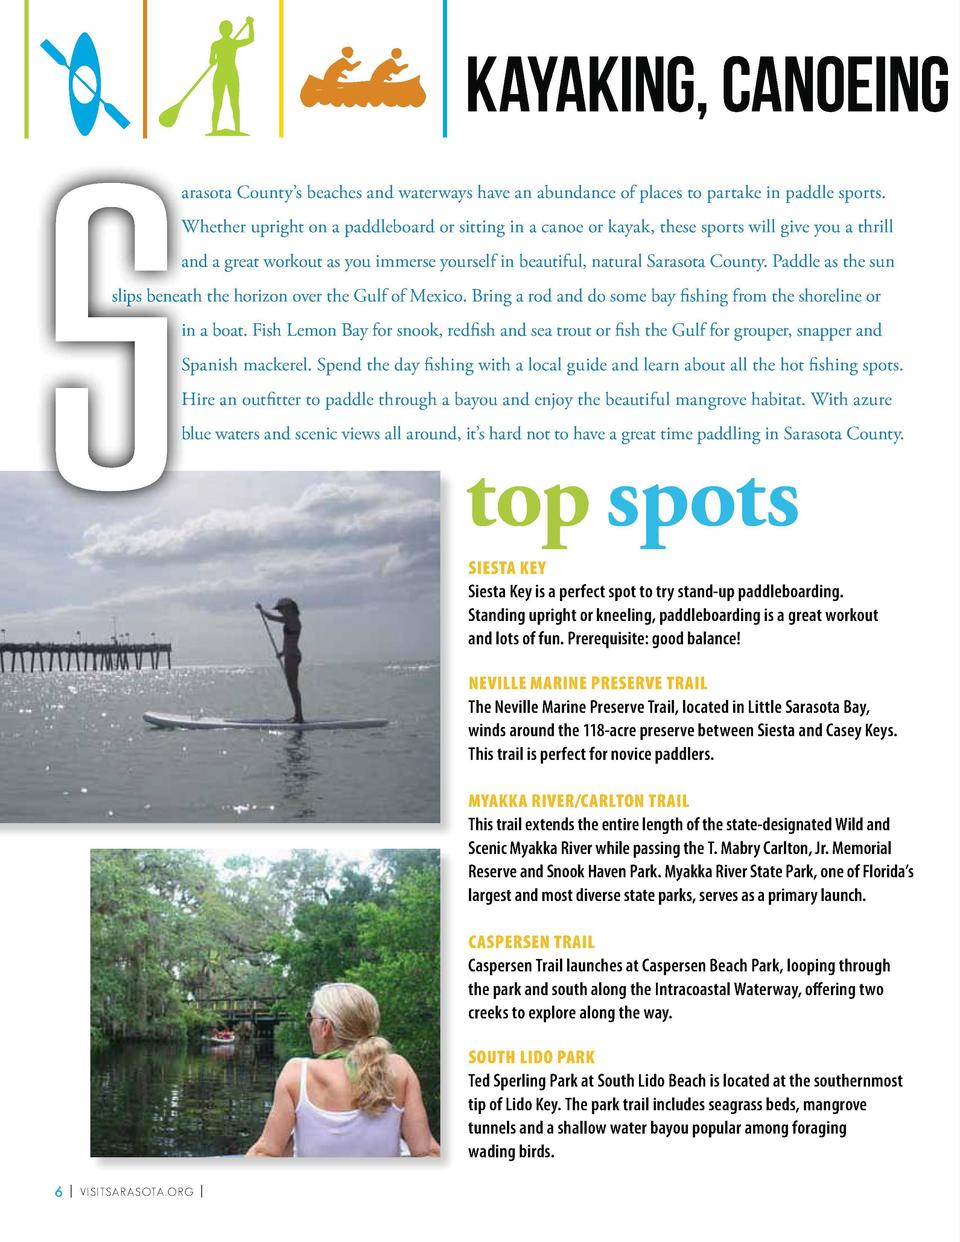 S  Kayaking, Canoeing and Paddleboarding  aarasota County   s beaches and waterways have an abundance of places to partake...